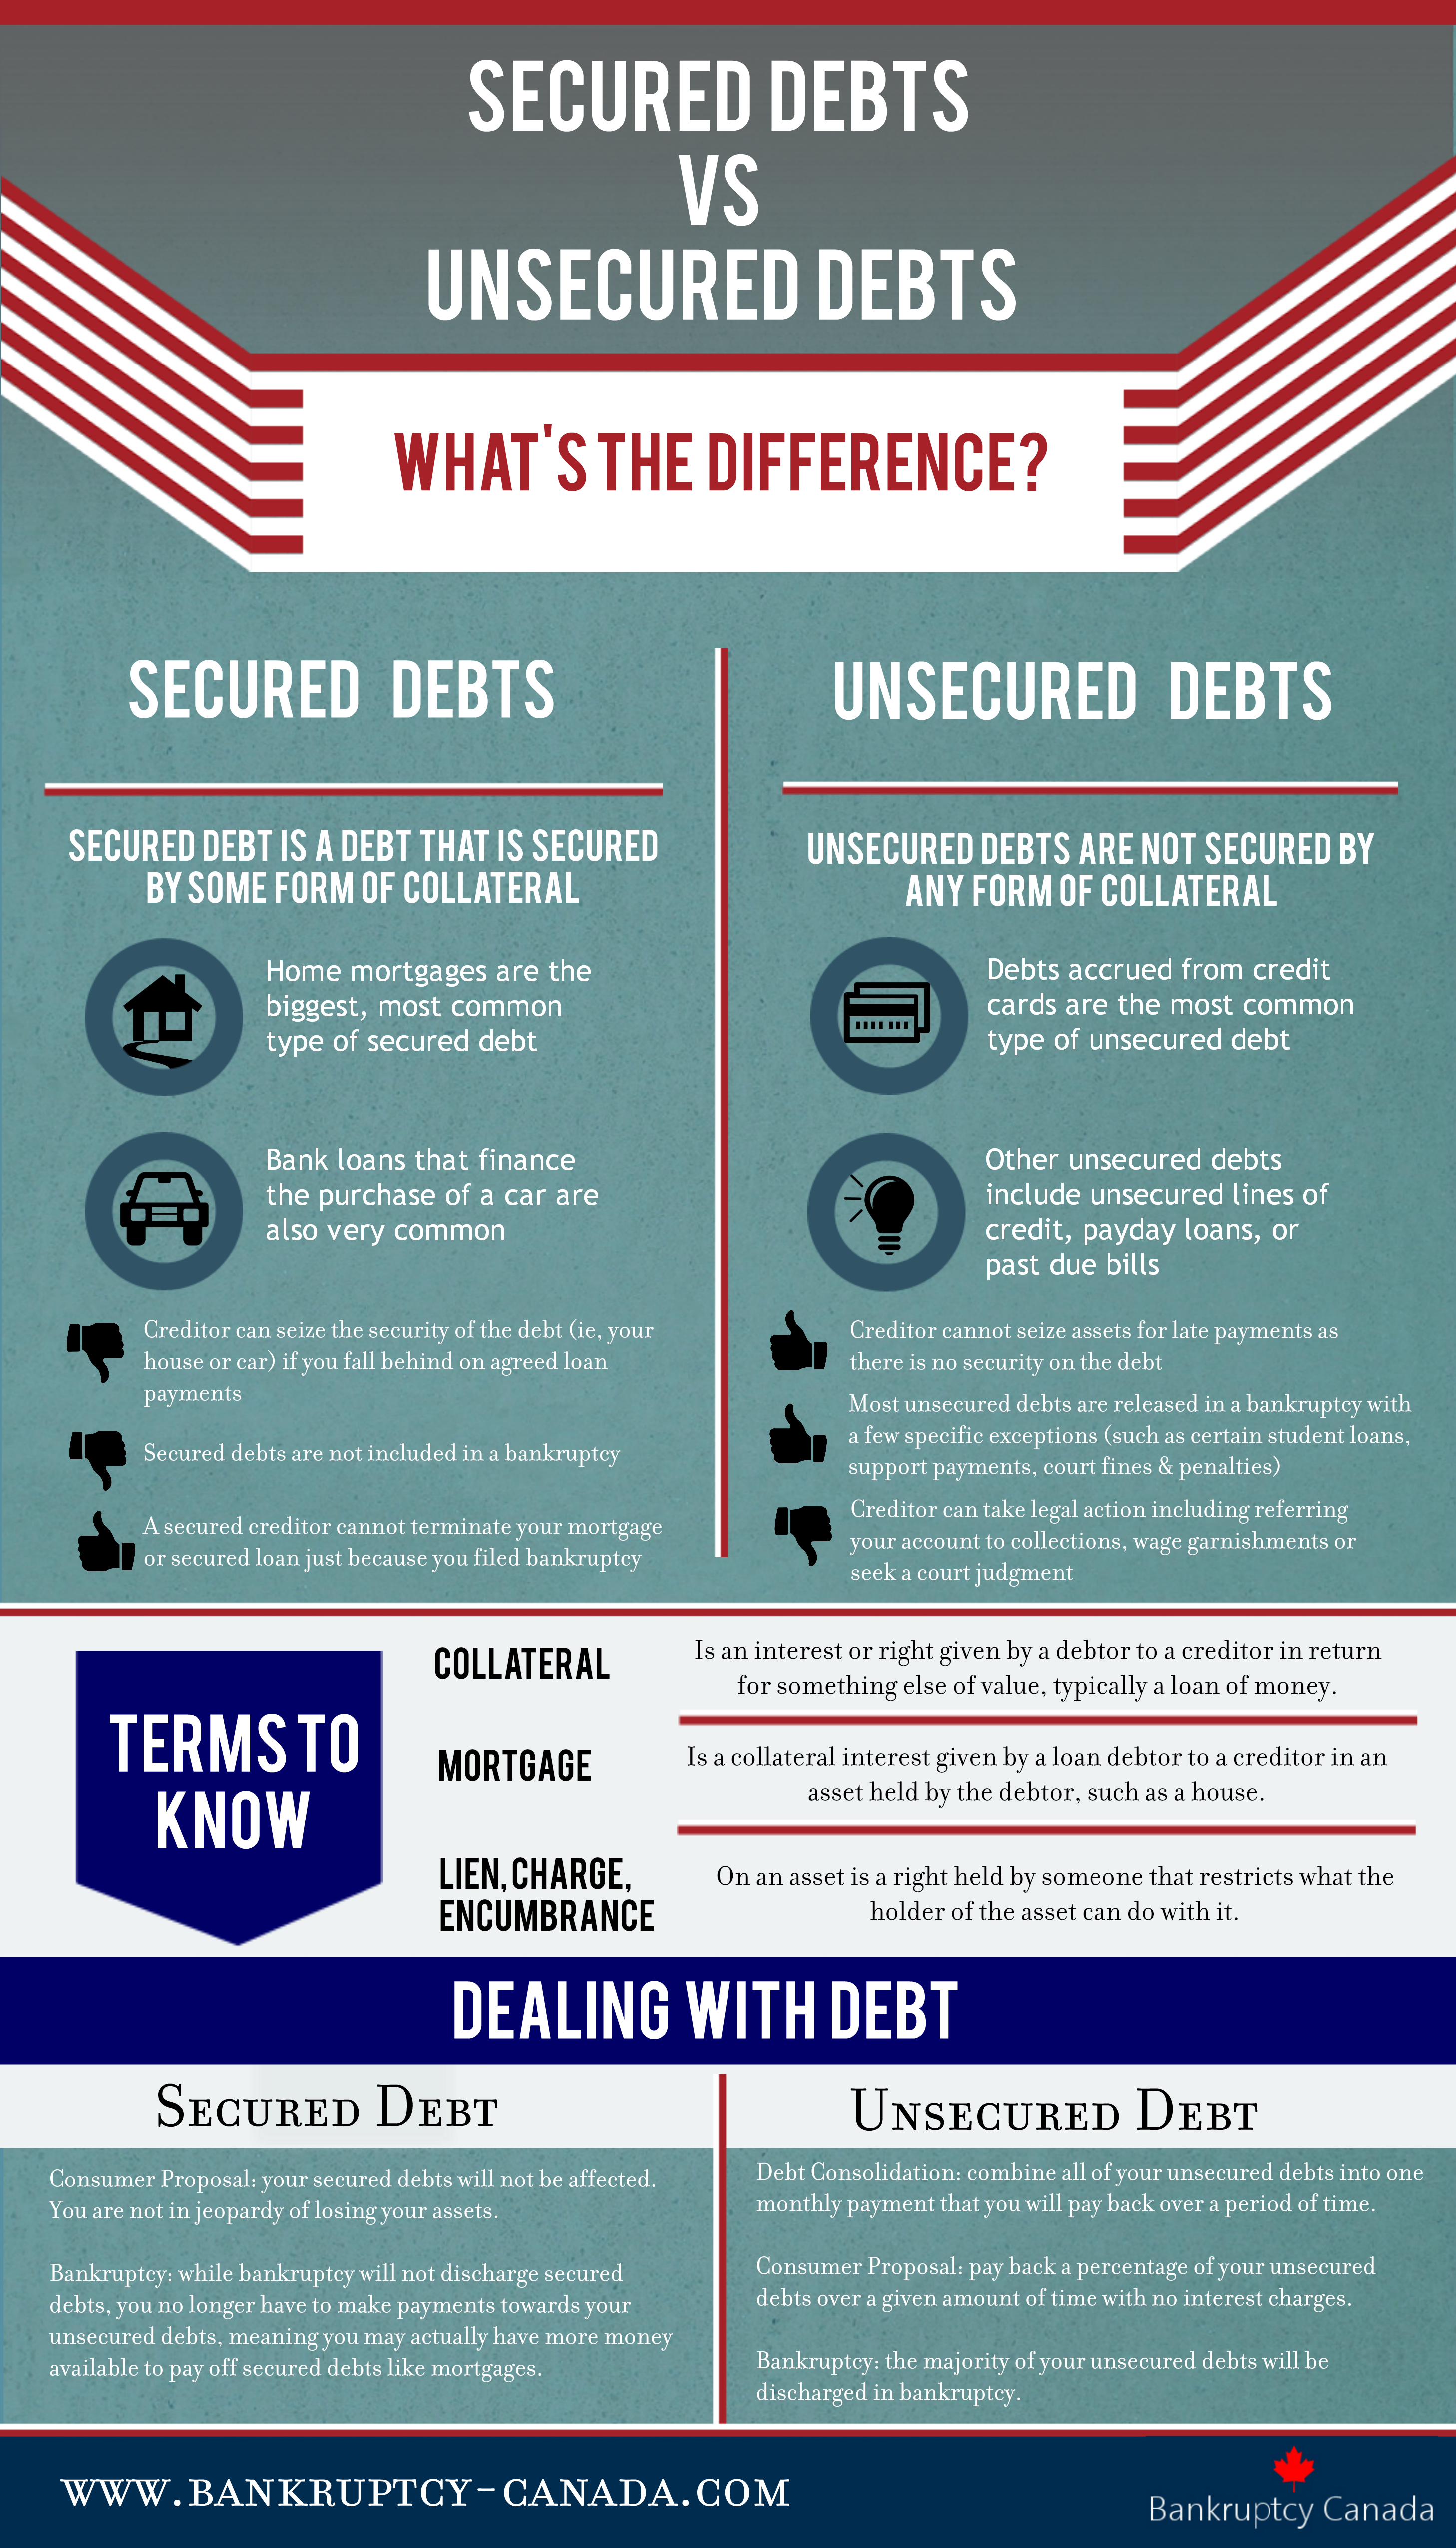 secured and unsecured debt in bankruptcy in Canada